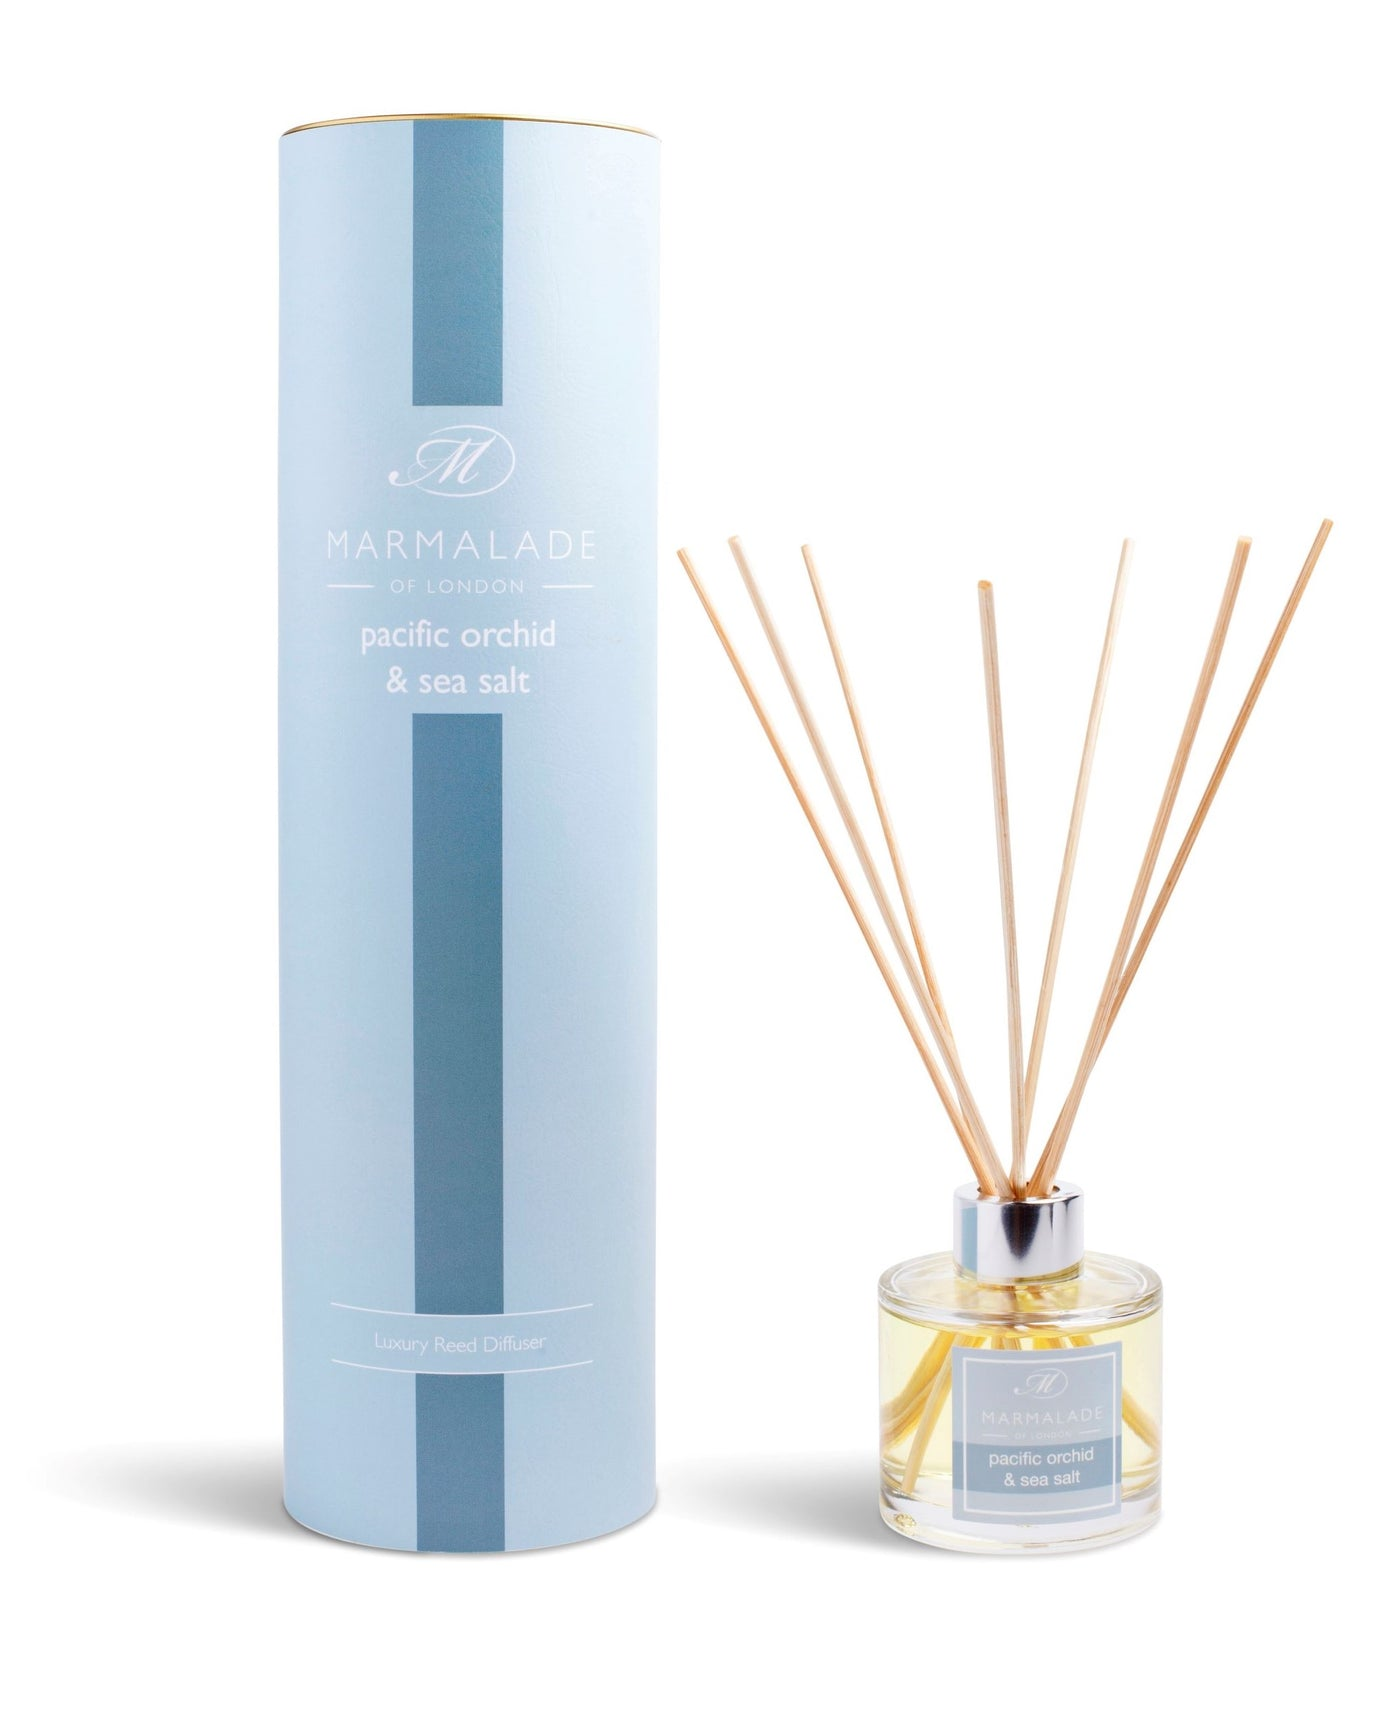 Pacific Orchid & Sea Salt Diffuser and pale blue presentation box